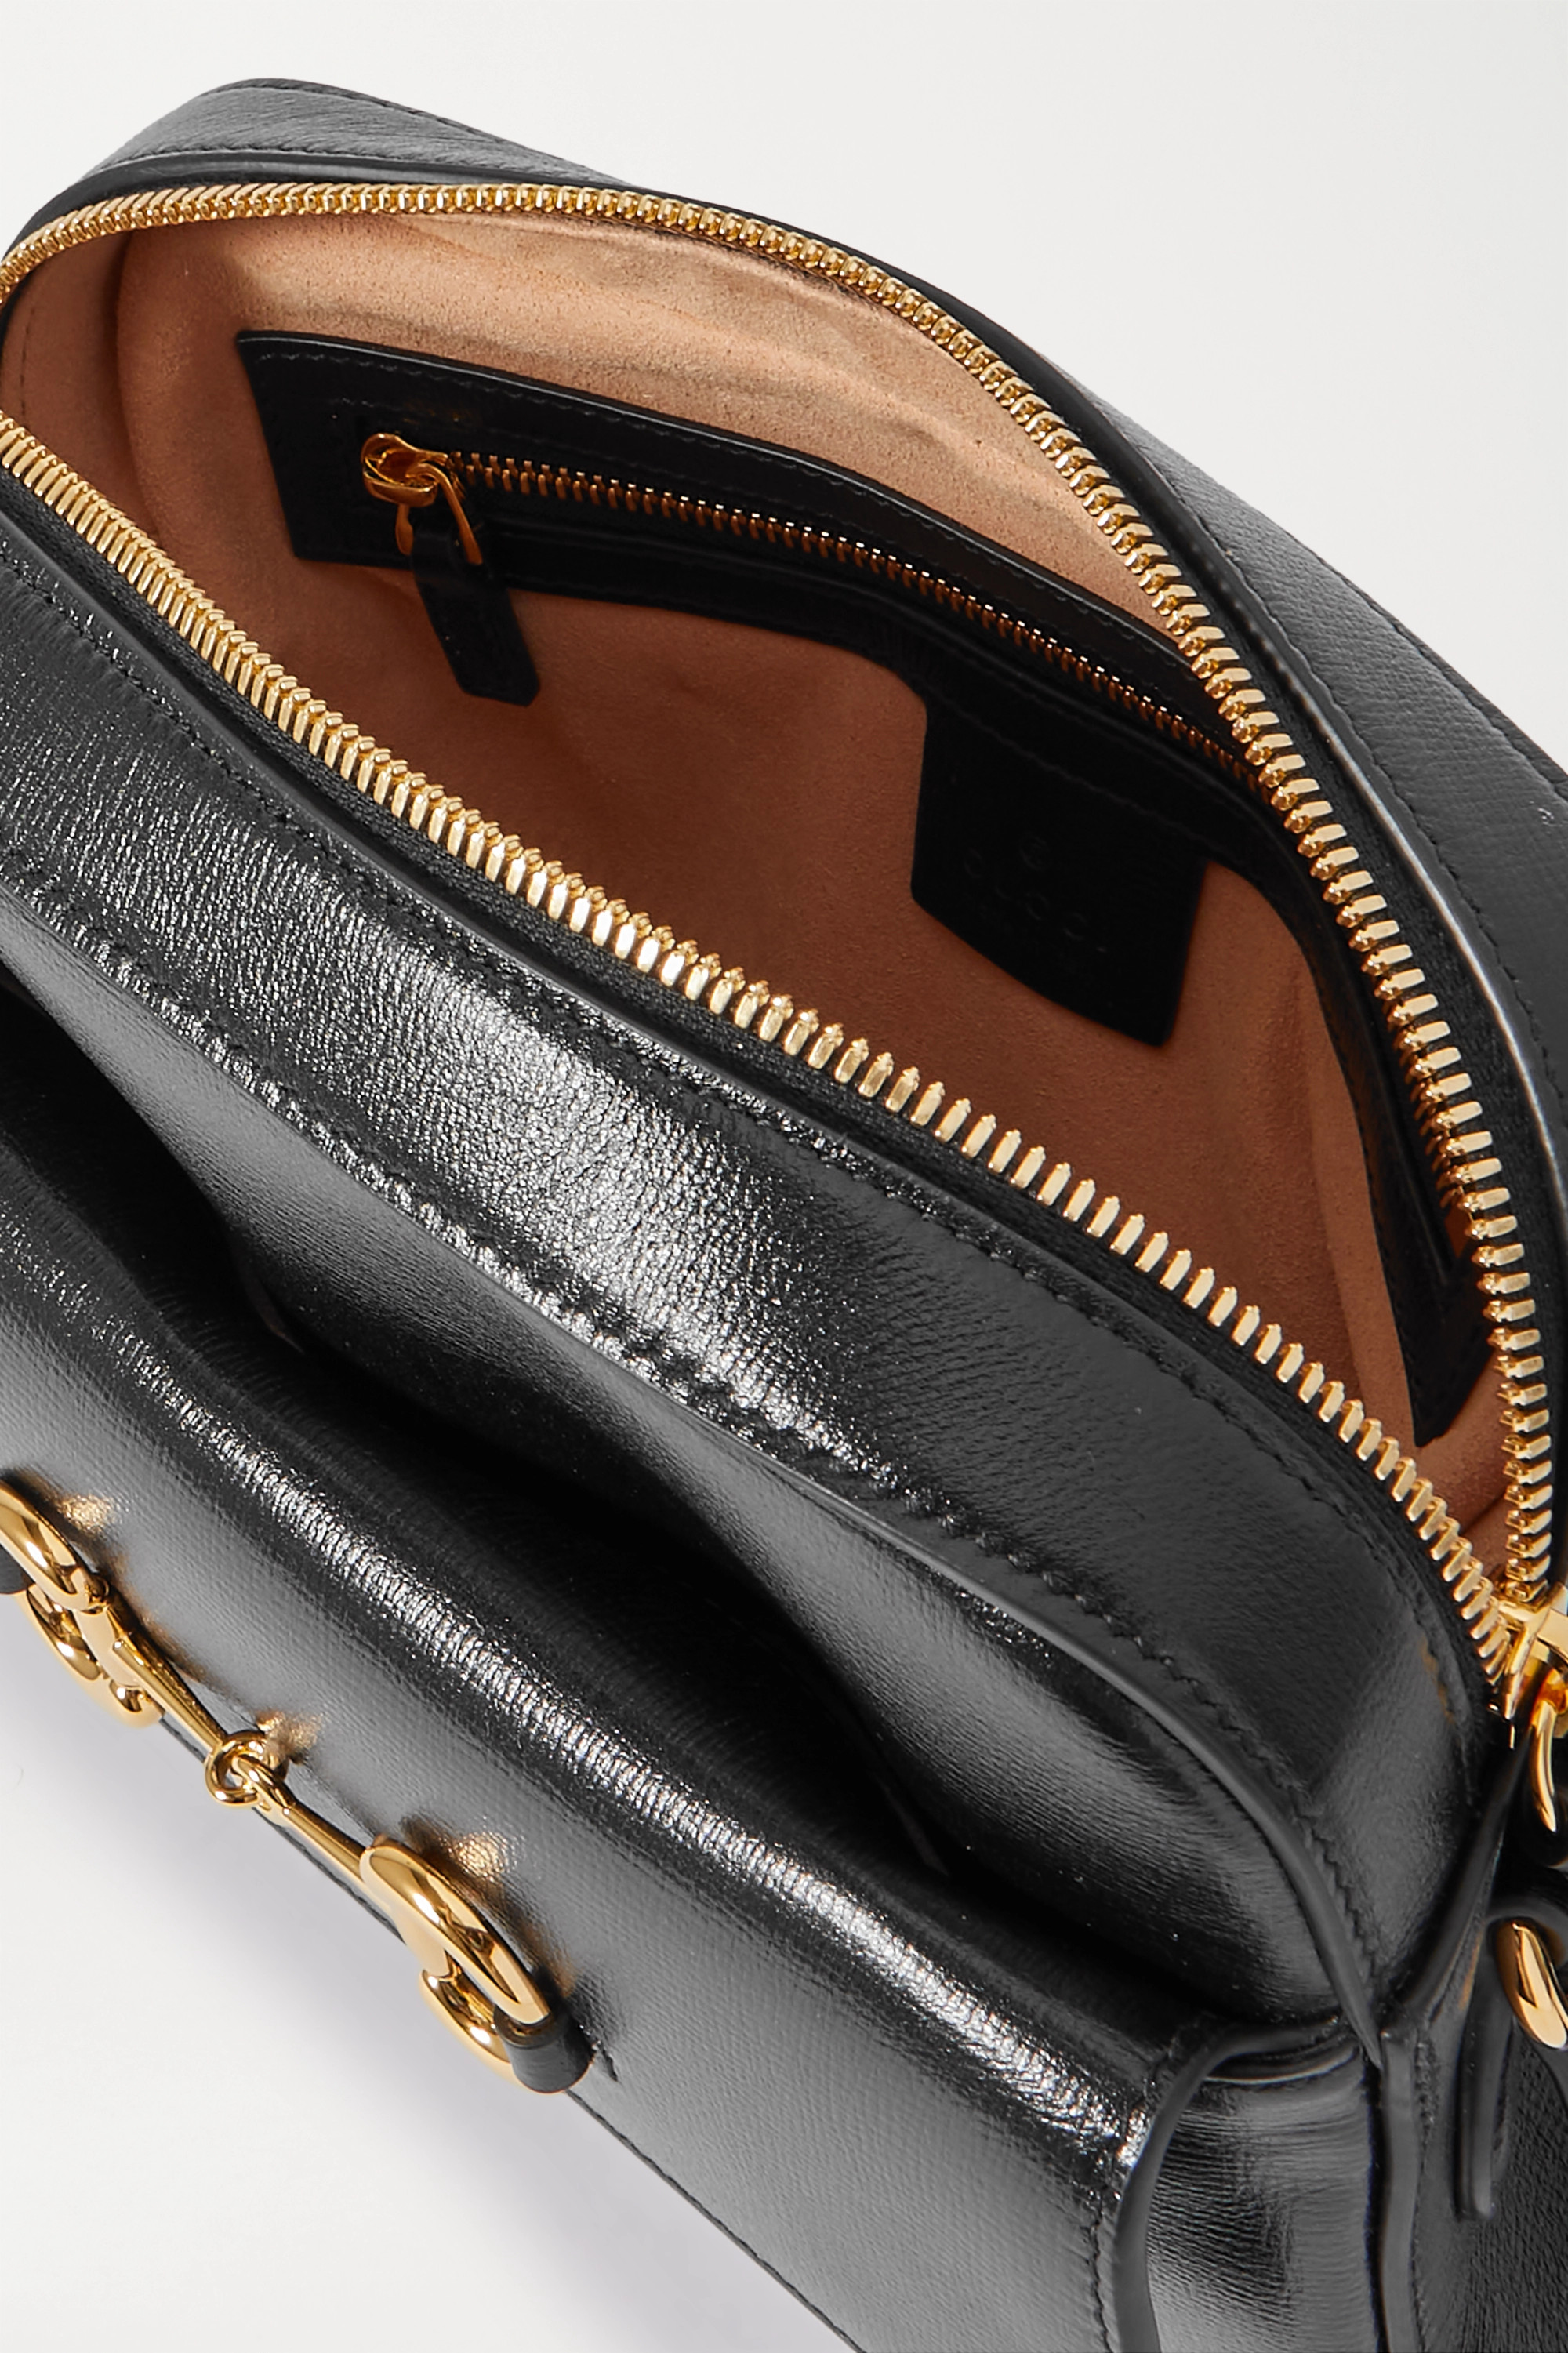 Gucci 1955 small horsebit-detailed textured-leather shoulder bag